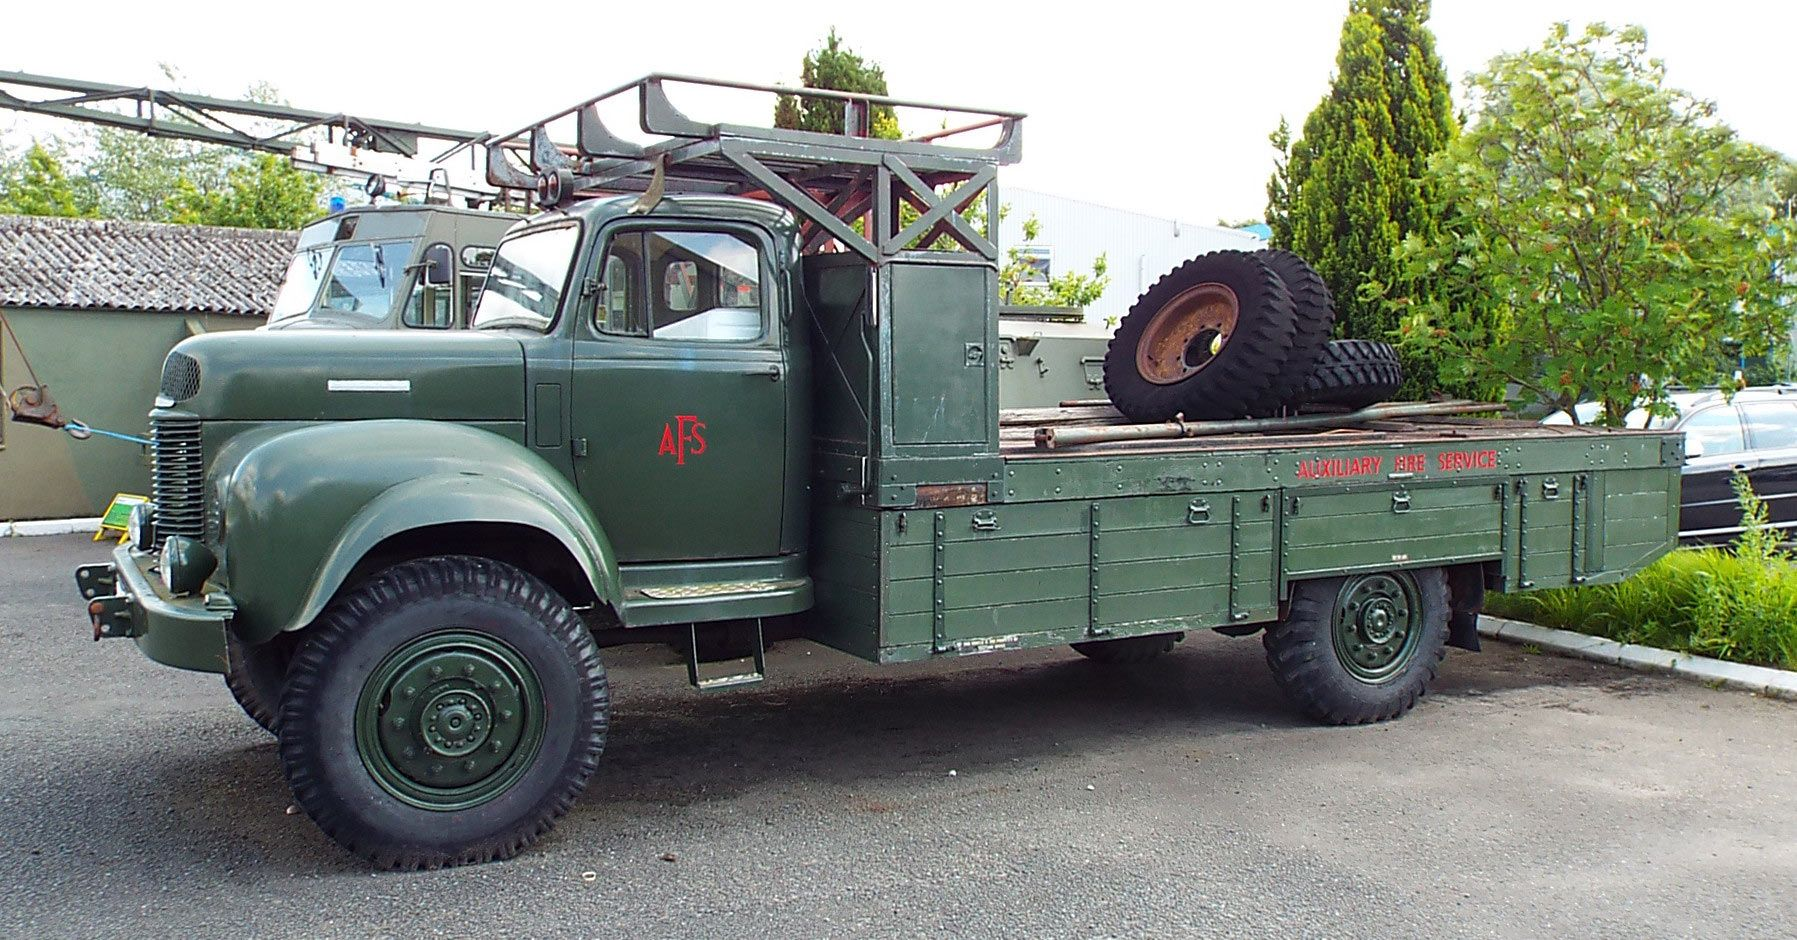 Auxiliary Fire Service Bedford Lorry 1944 Yorkshire Air